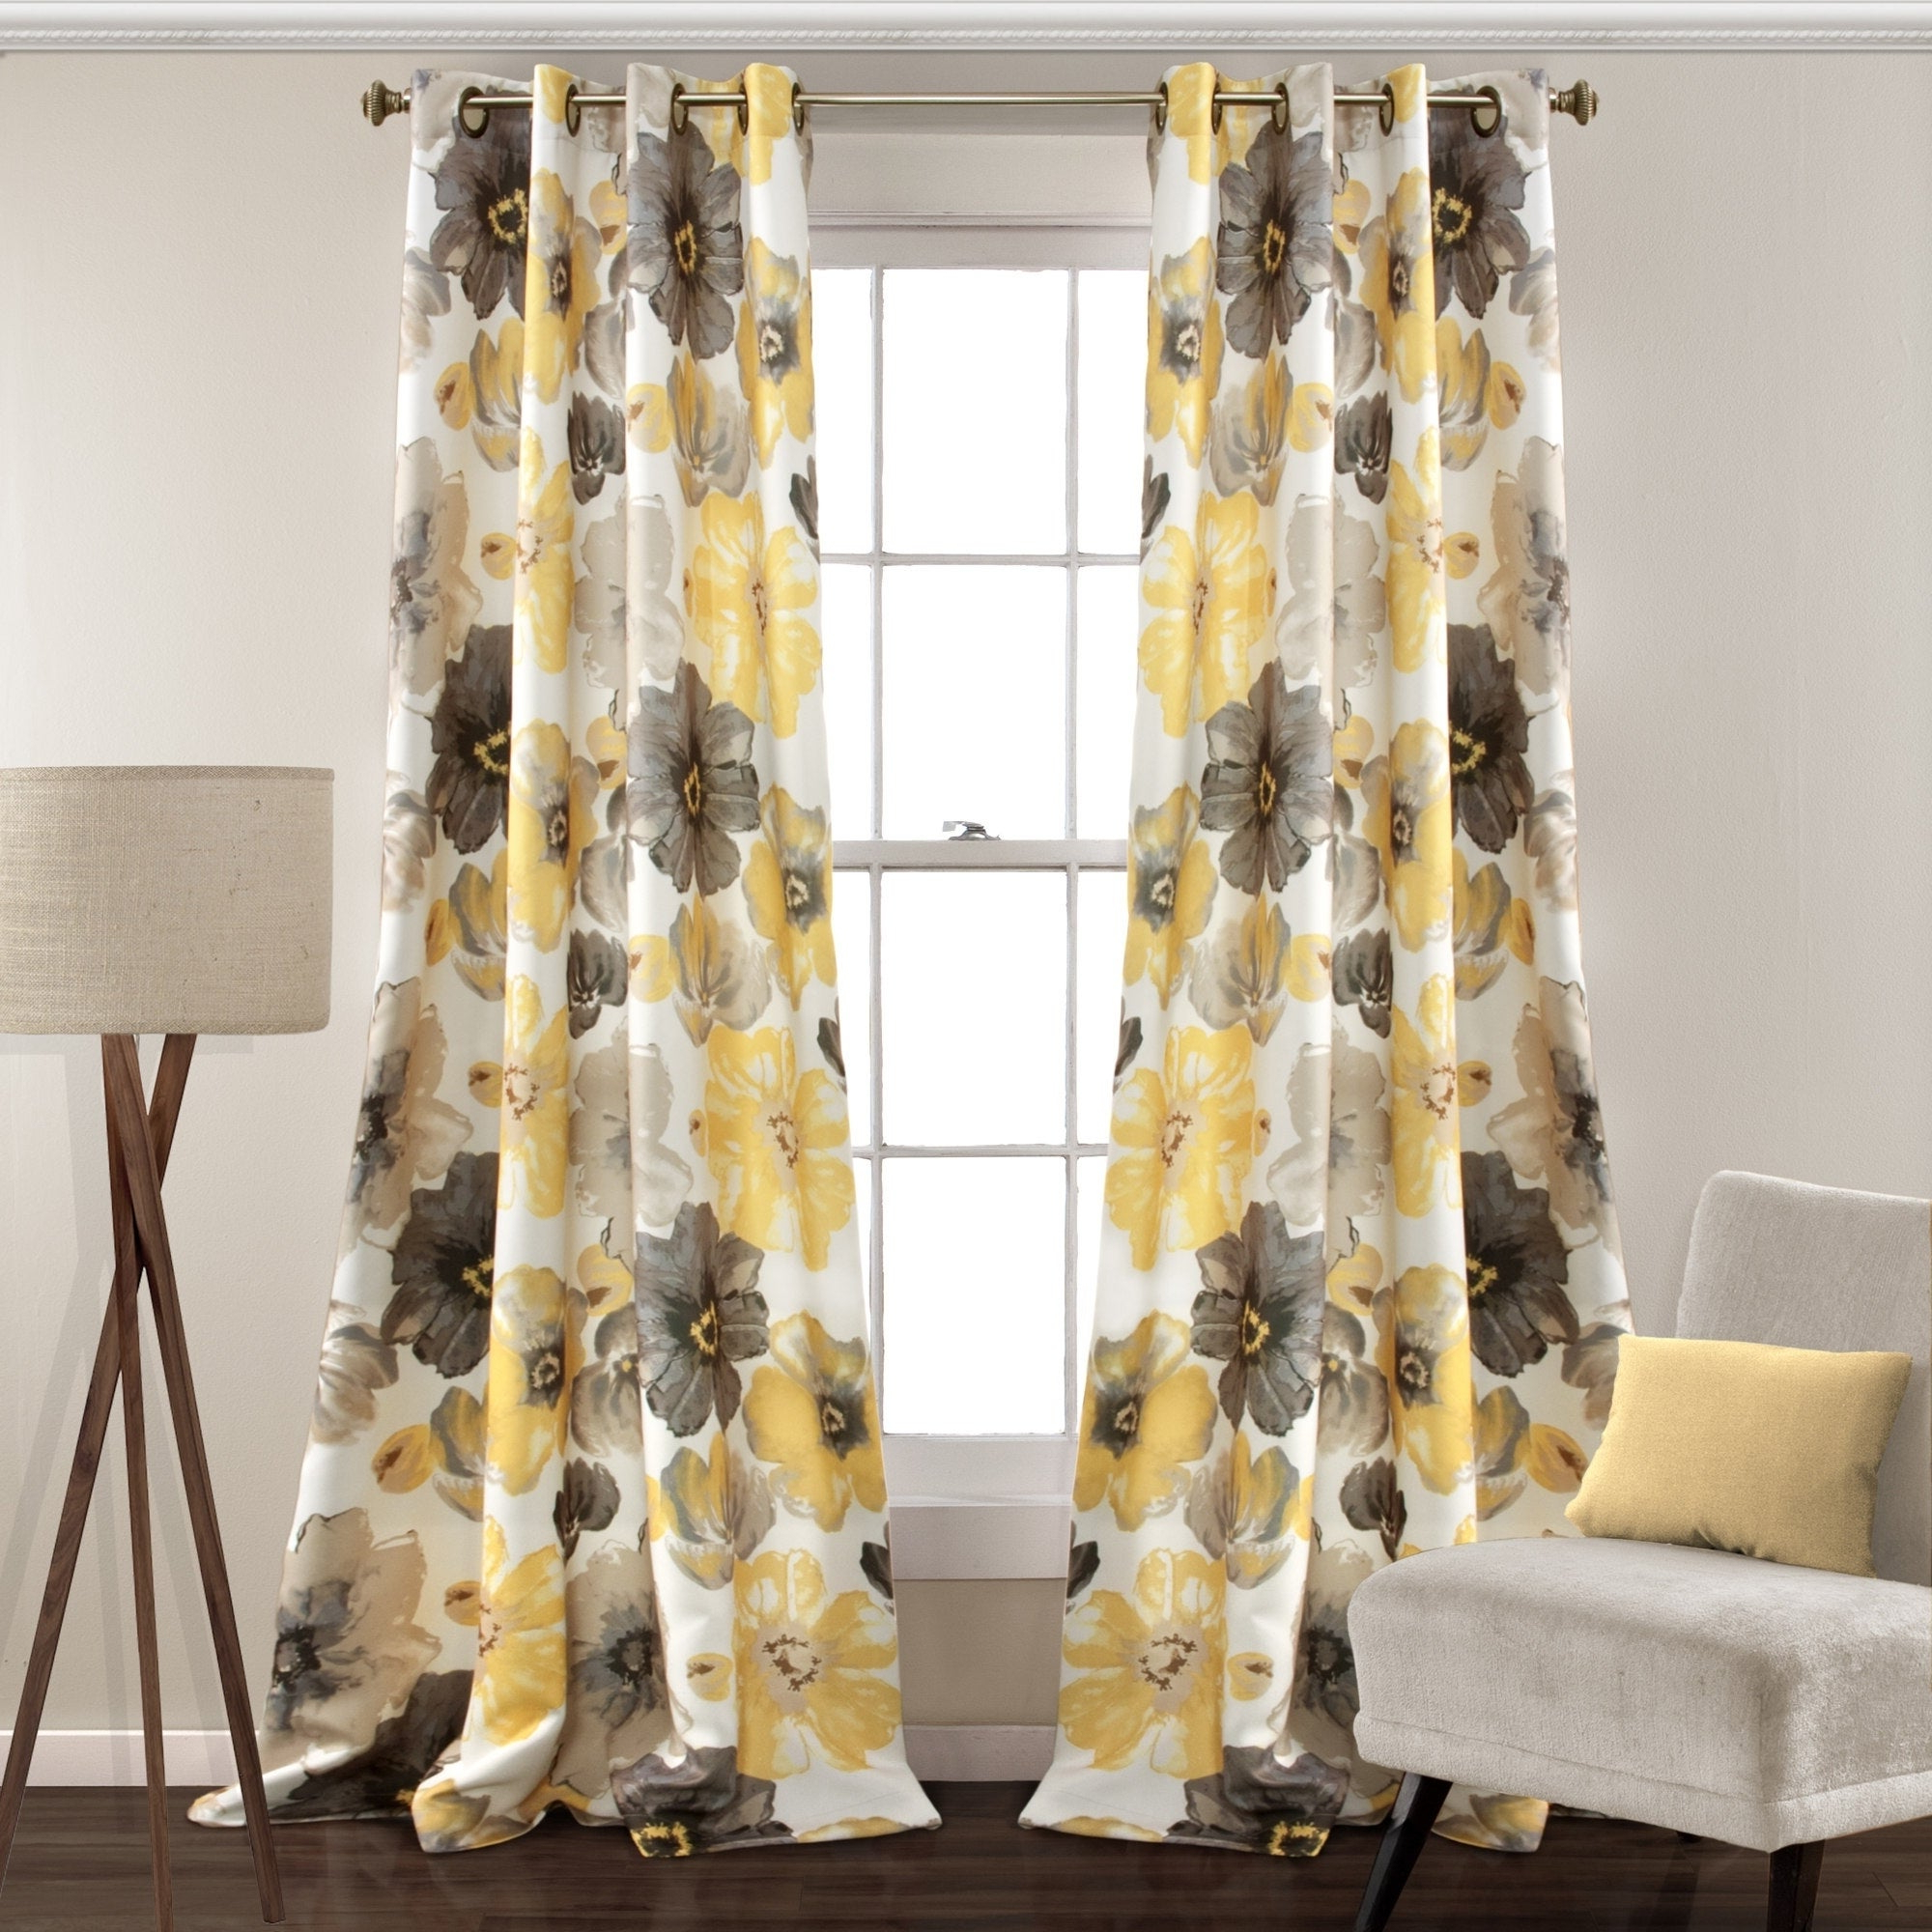 Widely Used Details About Lush Decor Leah Room Darkening Curtain Panel Pair Throughout Weeping Flowers Room Darkening Curtain Panel Pairs (View 11 of 20)